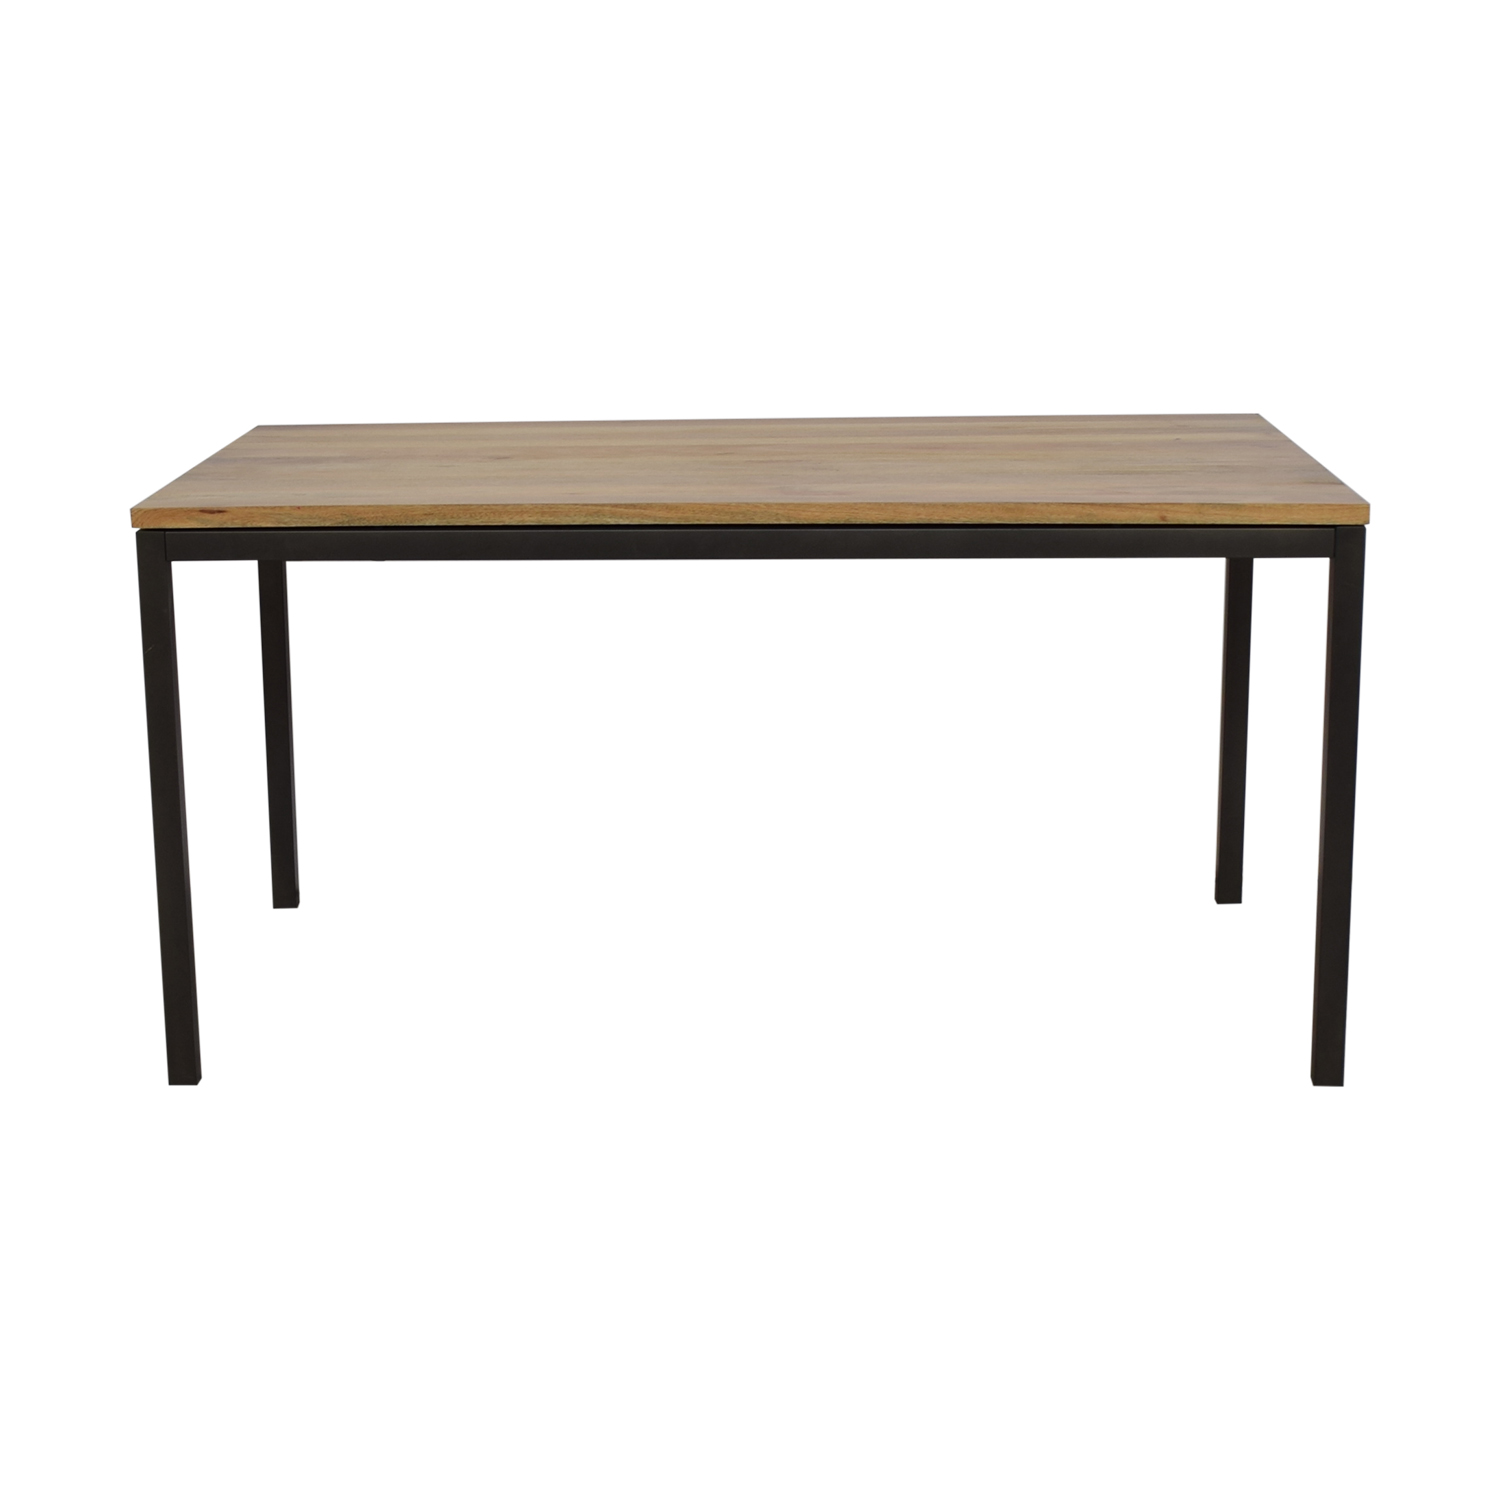 West Elm West Elm Box Frame Dining Table nj